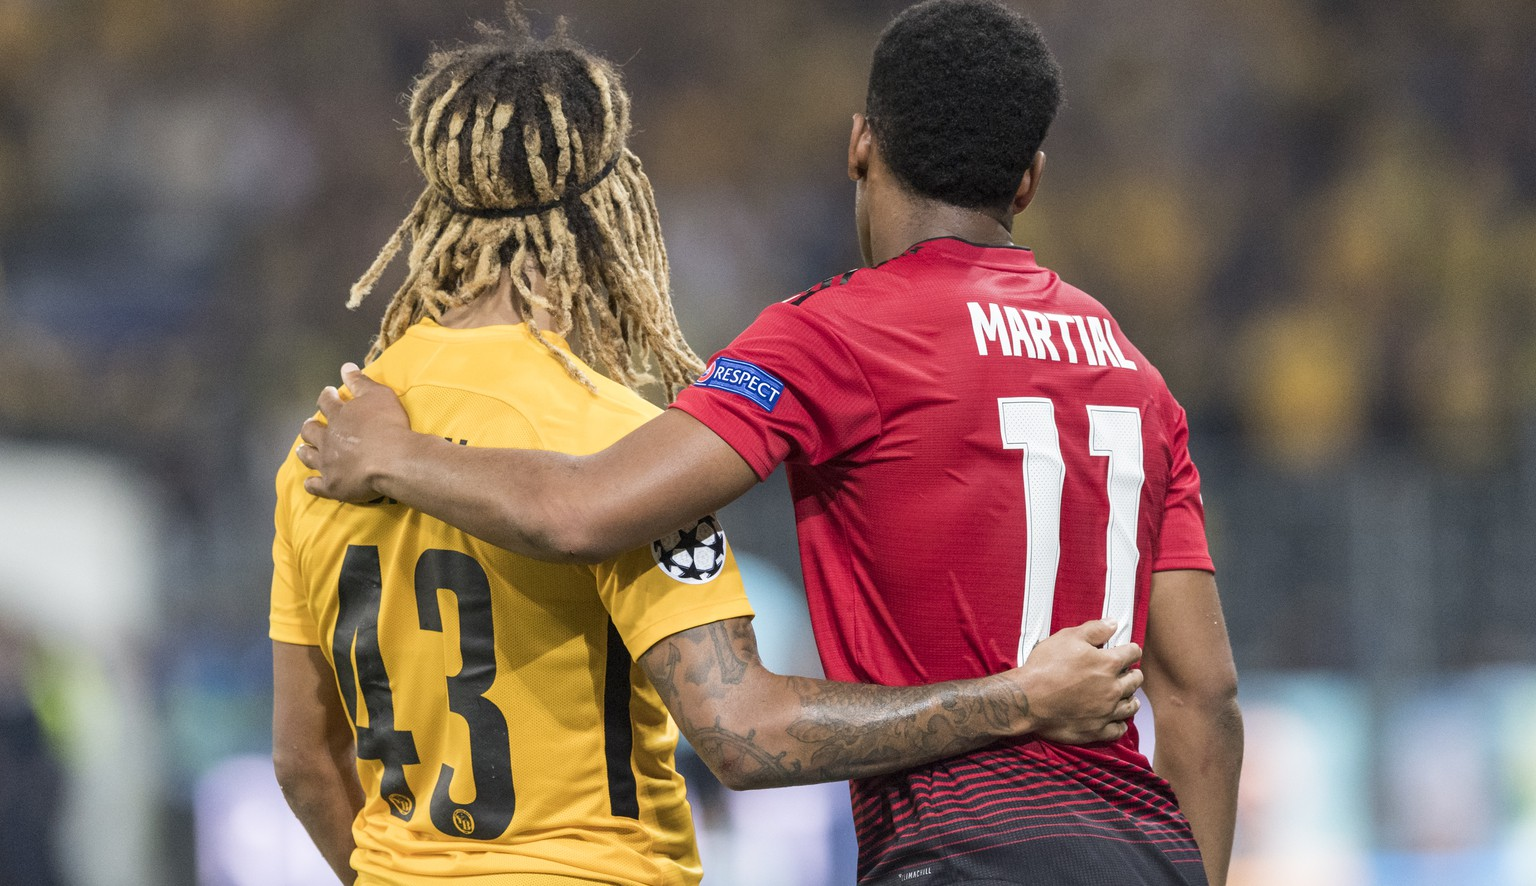 YB's Kevin Mbabu, left, hugs Manchester United's Anthony Martial, right, after the UEFA Champions League group H matchday 1 soccer match between Switzerland's BSC Young Boys and England's Manchester United FC in the Stade de Suisse in Berne, Switzerland, on Wednesday, September 19, 2018. (KEYSTONE/Alessandro della Valle)